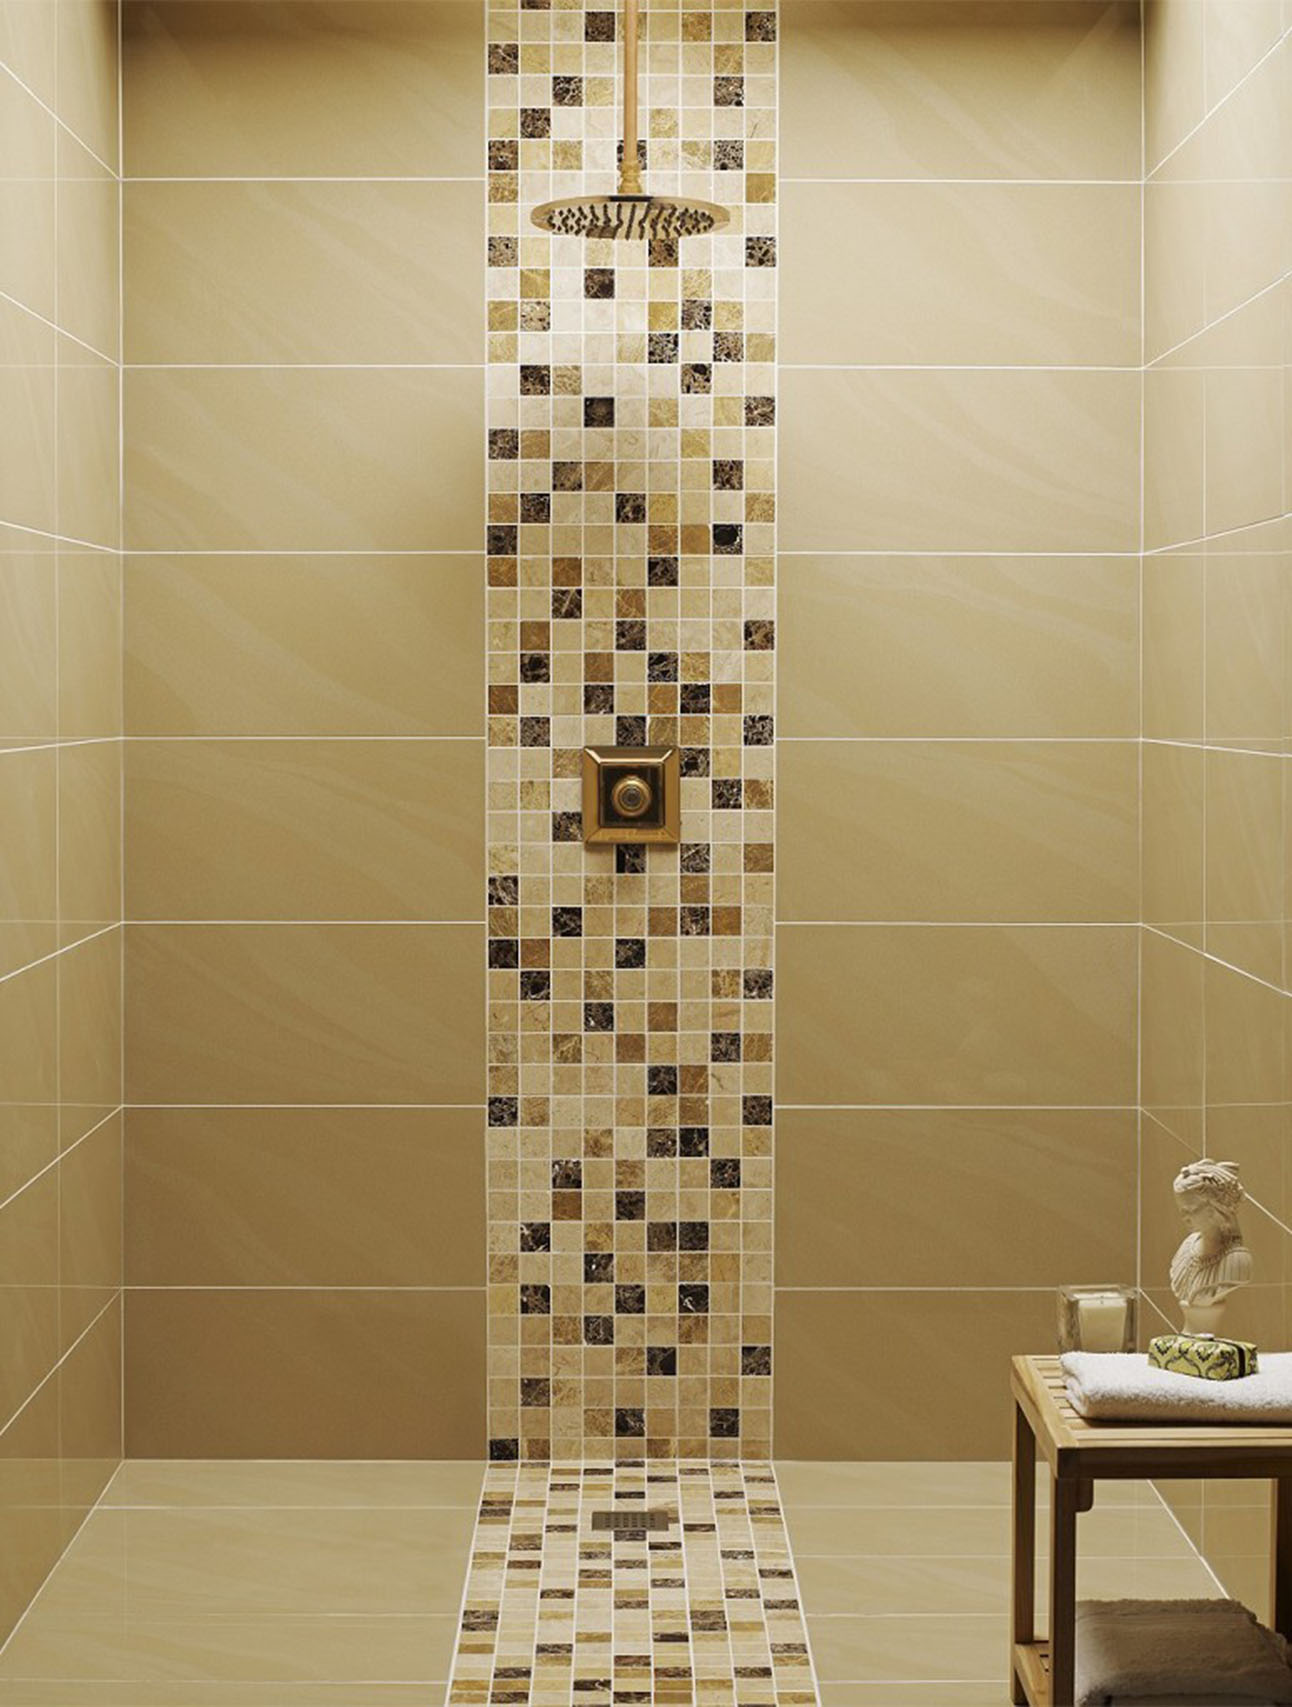 Best Kitchen Gallery: 30 Shower Tile Ideas On A Budget of Bathroom Tile Designs For Showers  on rachelxblog.com